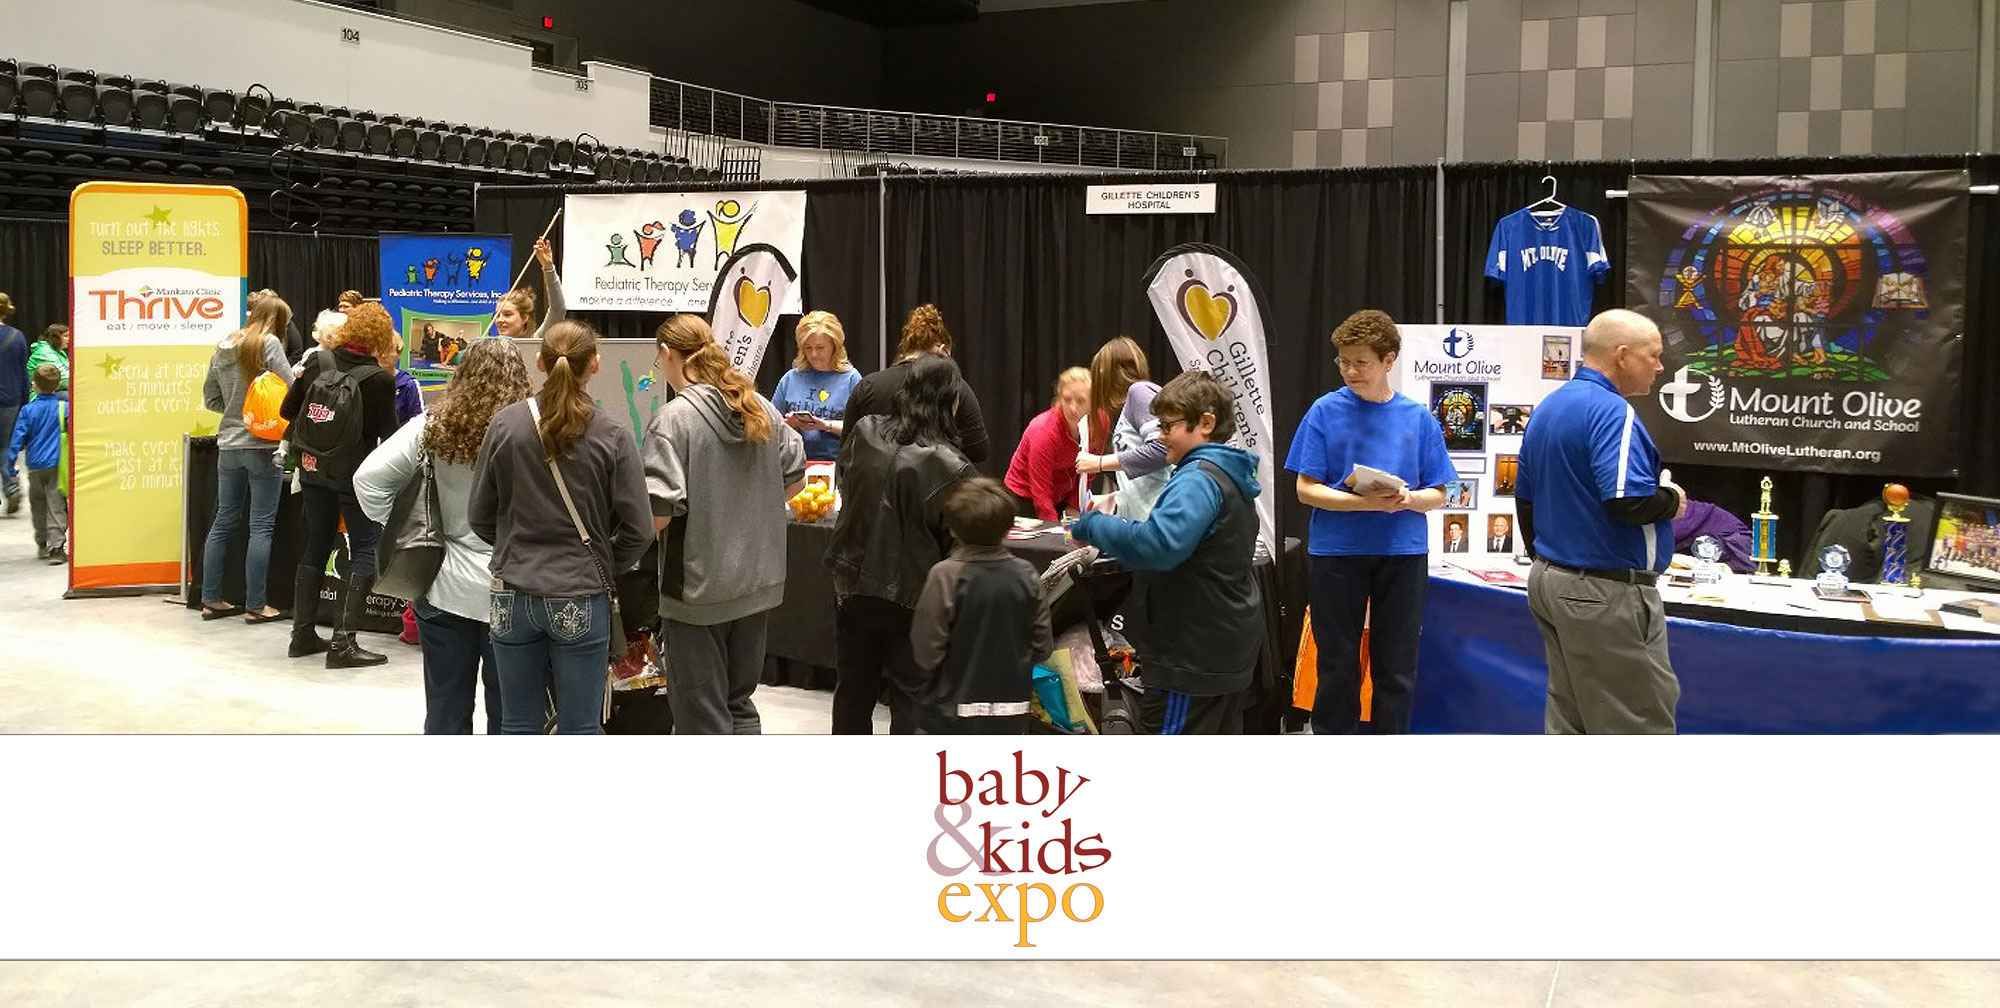 Baby & Kids Expo Banner